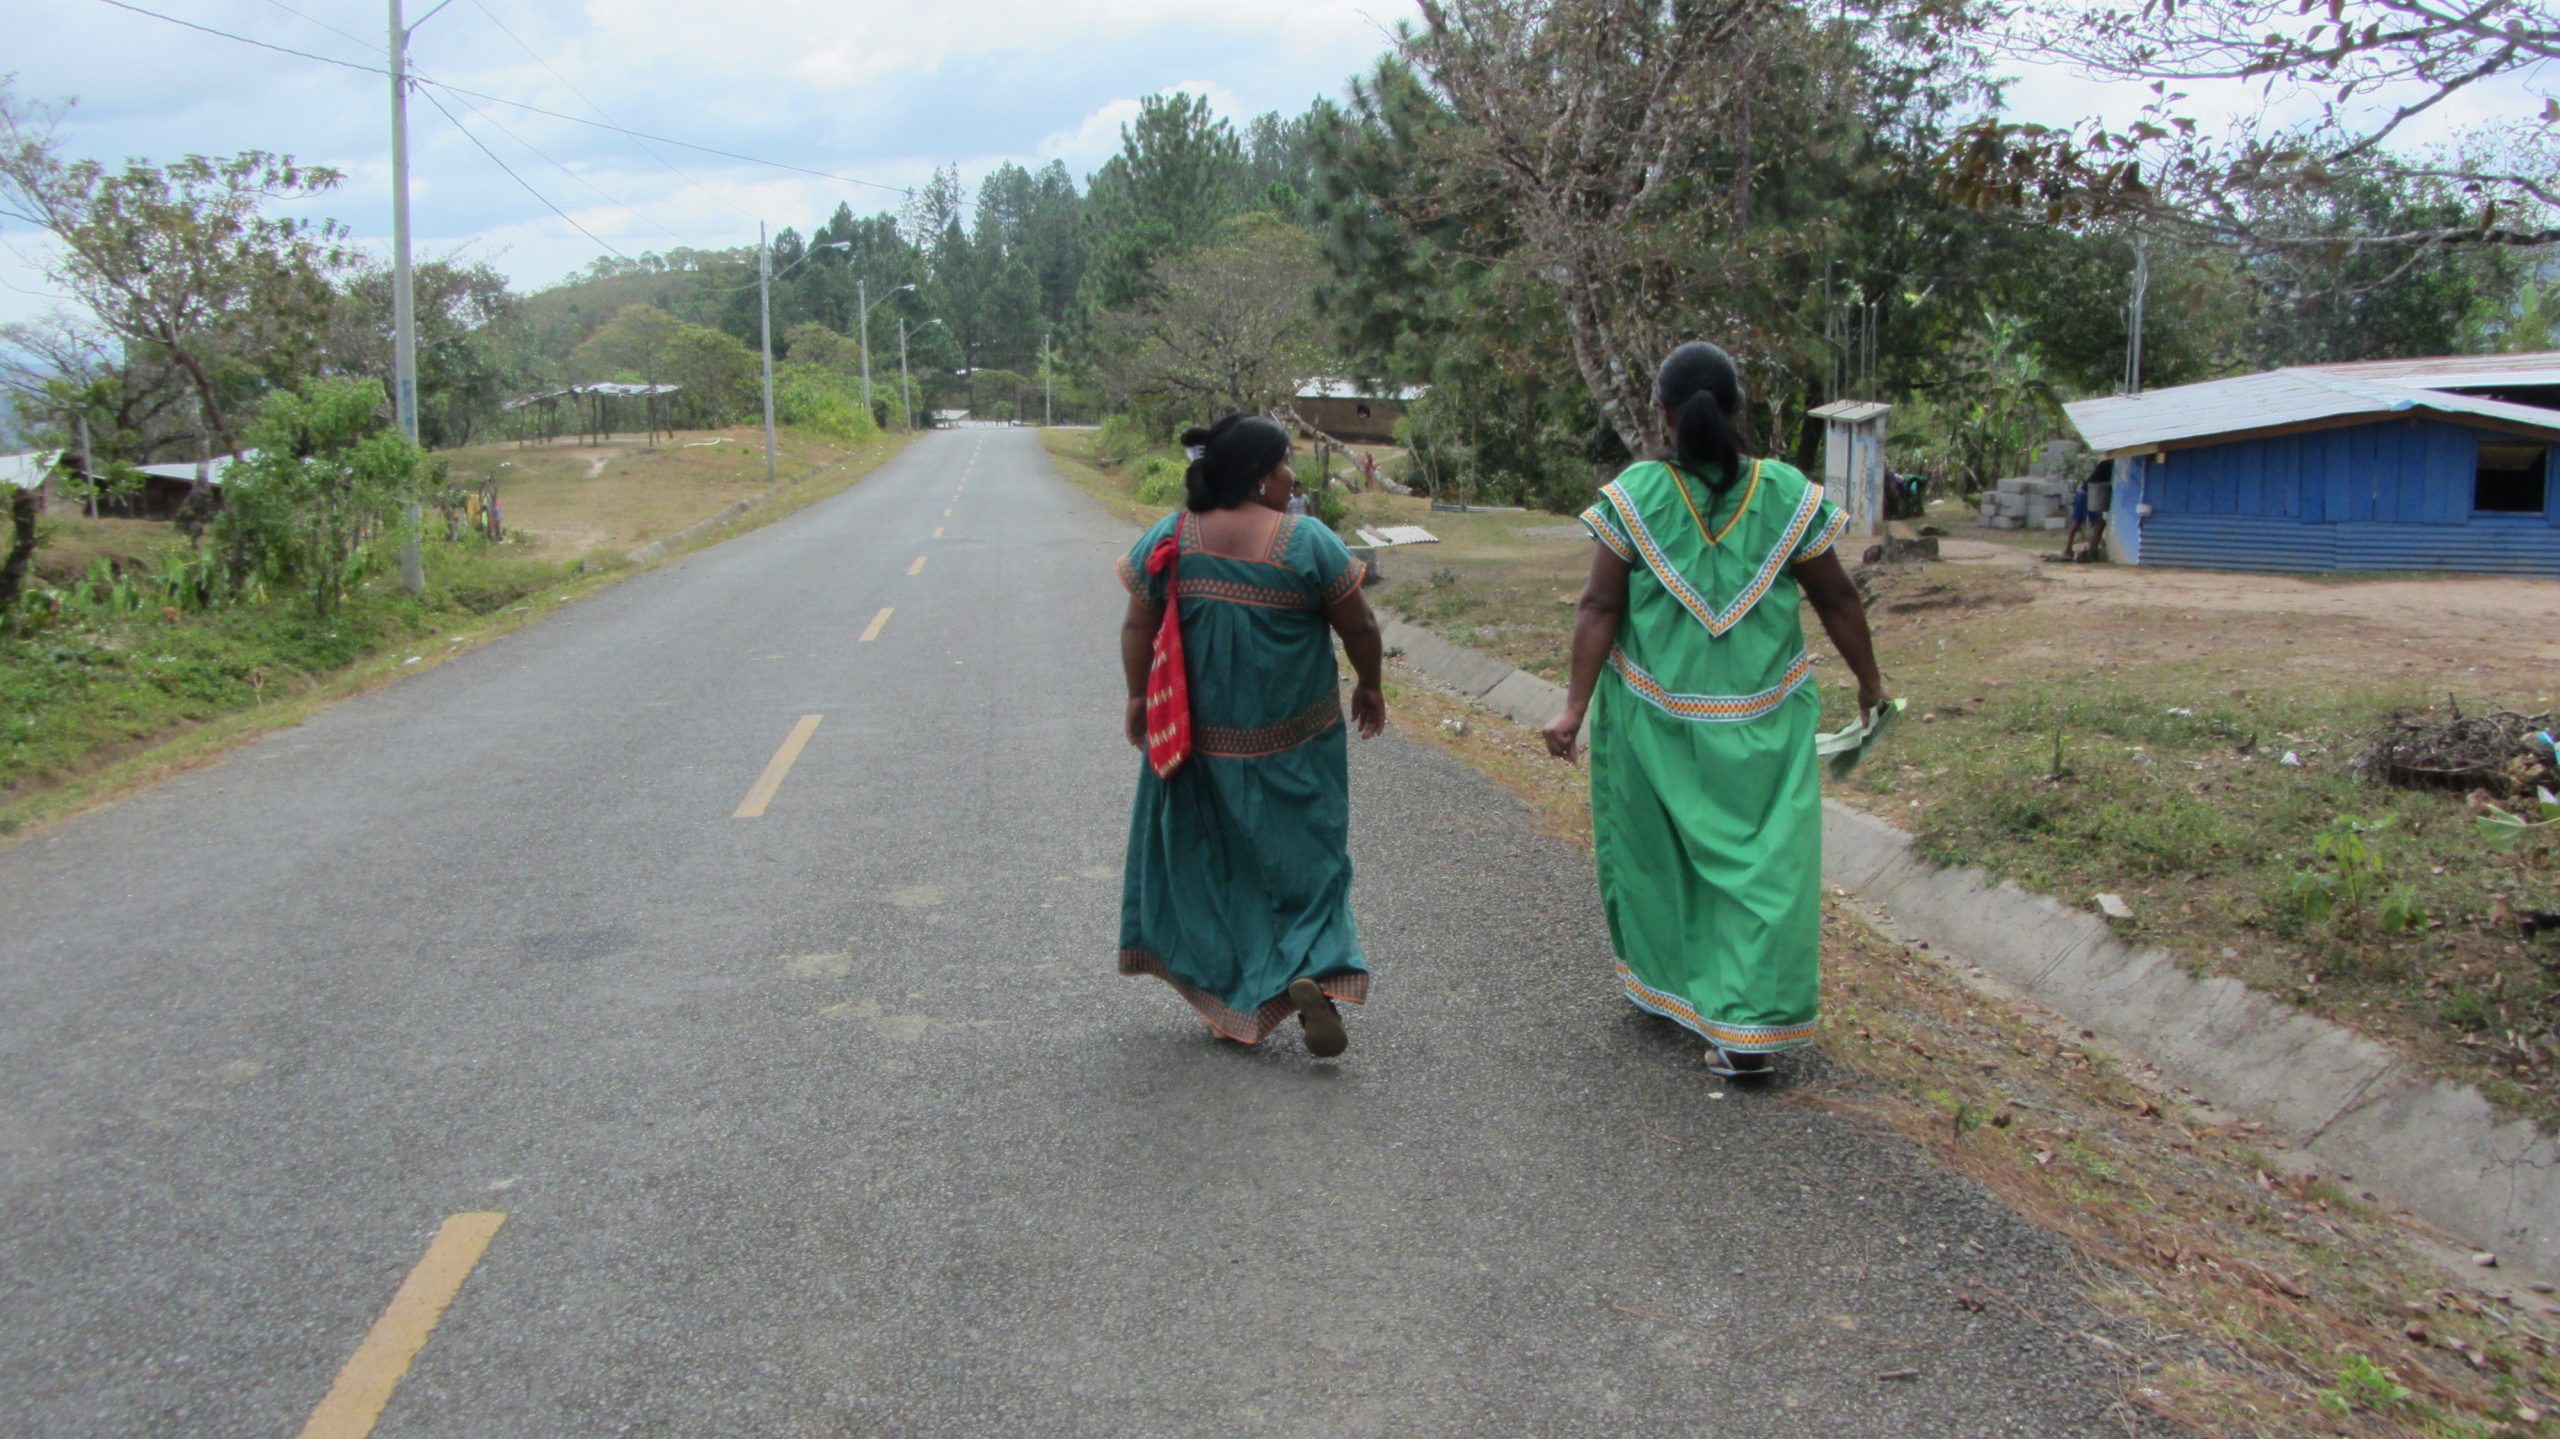 Ngöbe-Buglé women walking in Hato Chamí